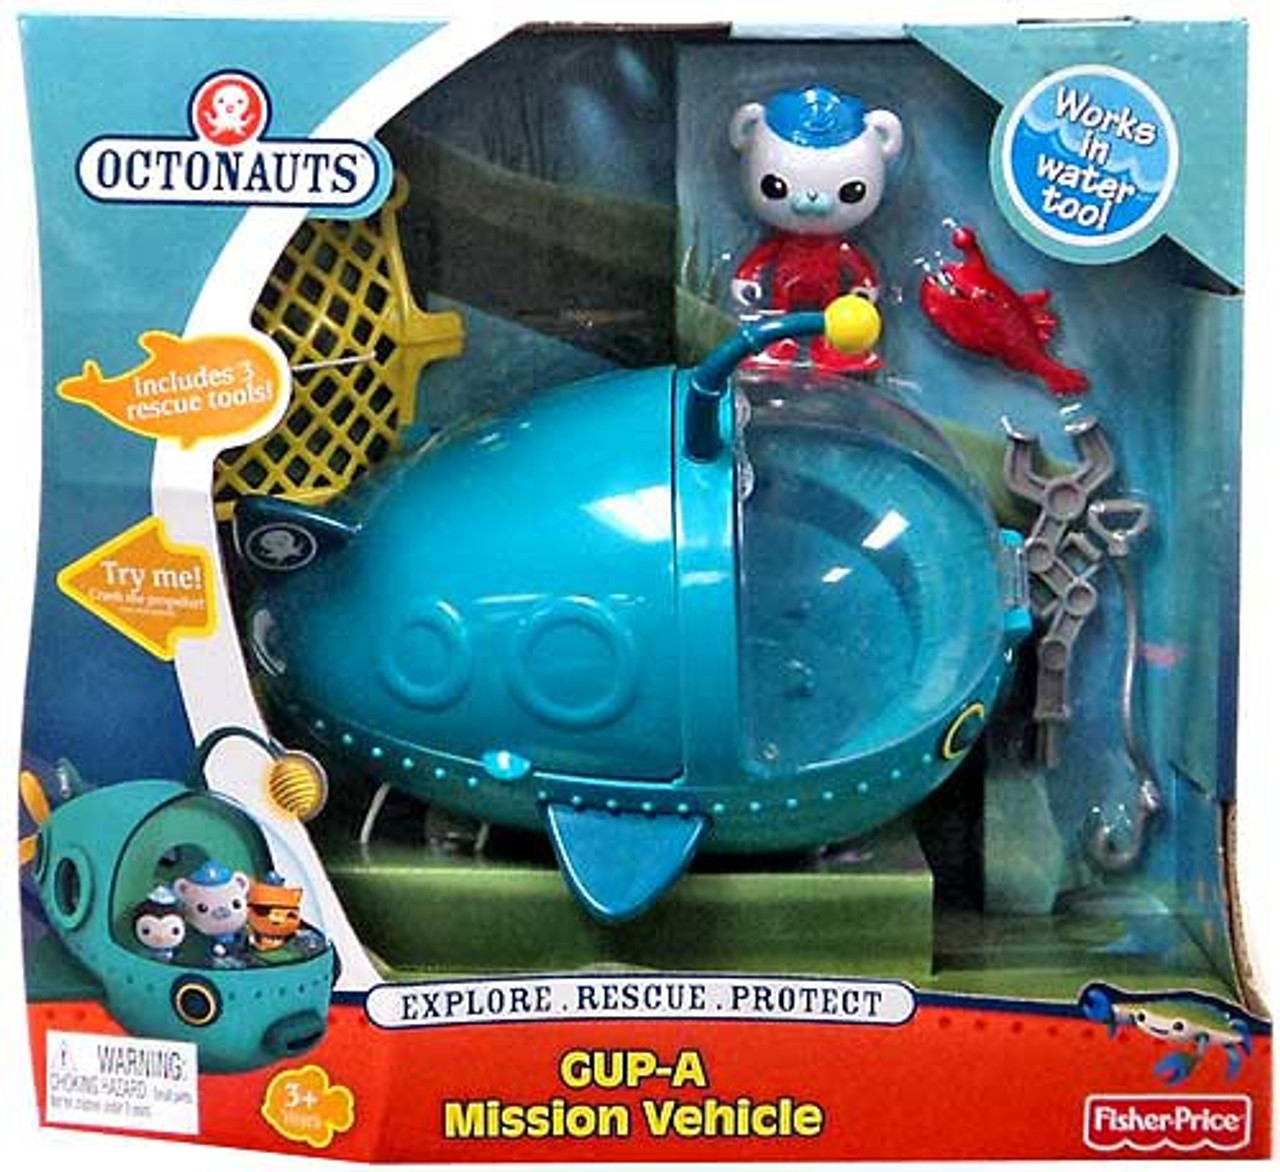 Fisher Price Octonauts Mission Vehicle GUP-A Playset